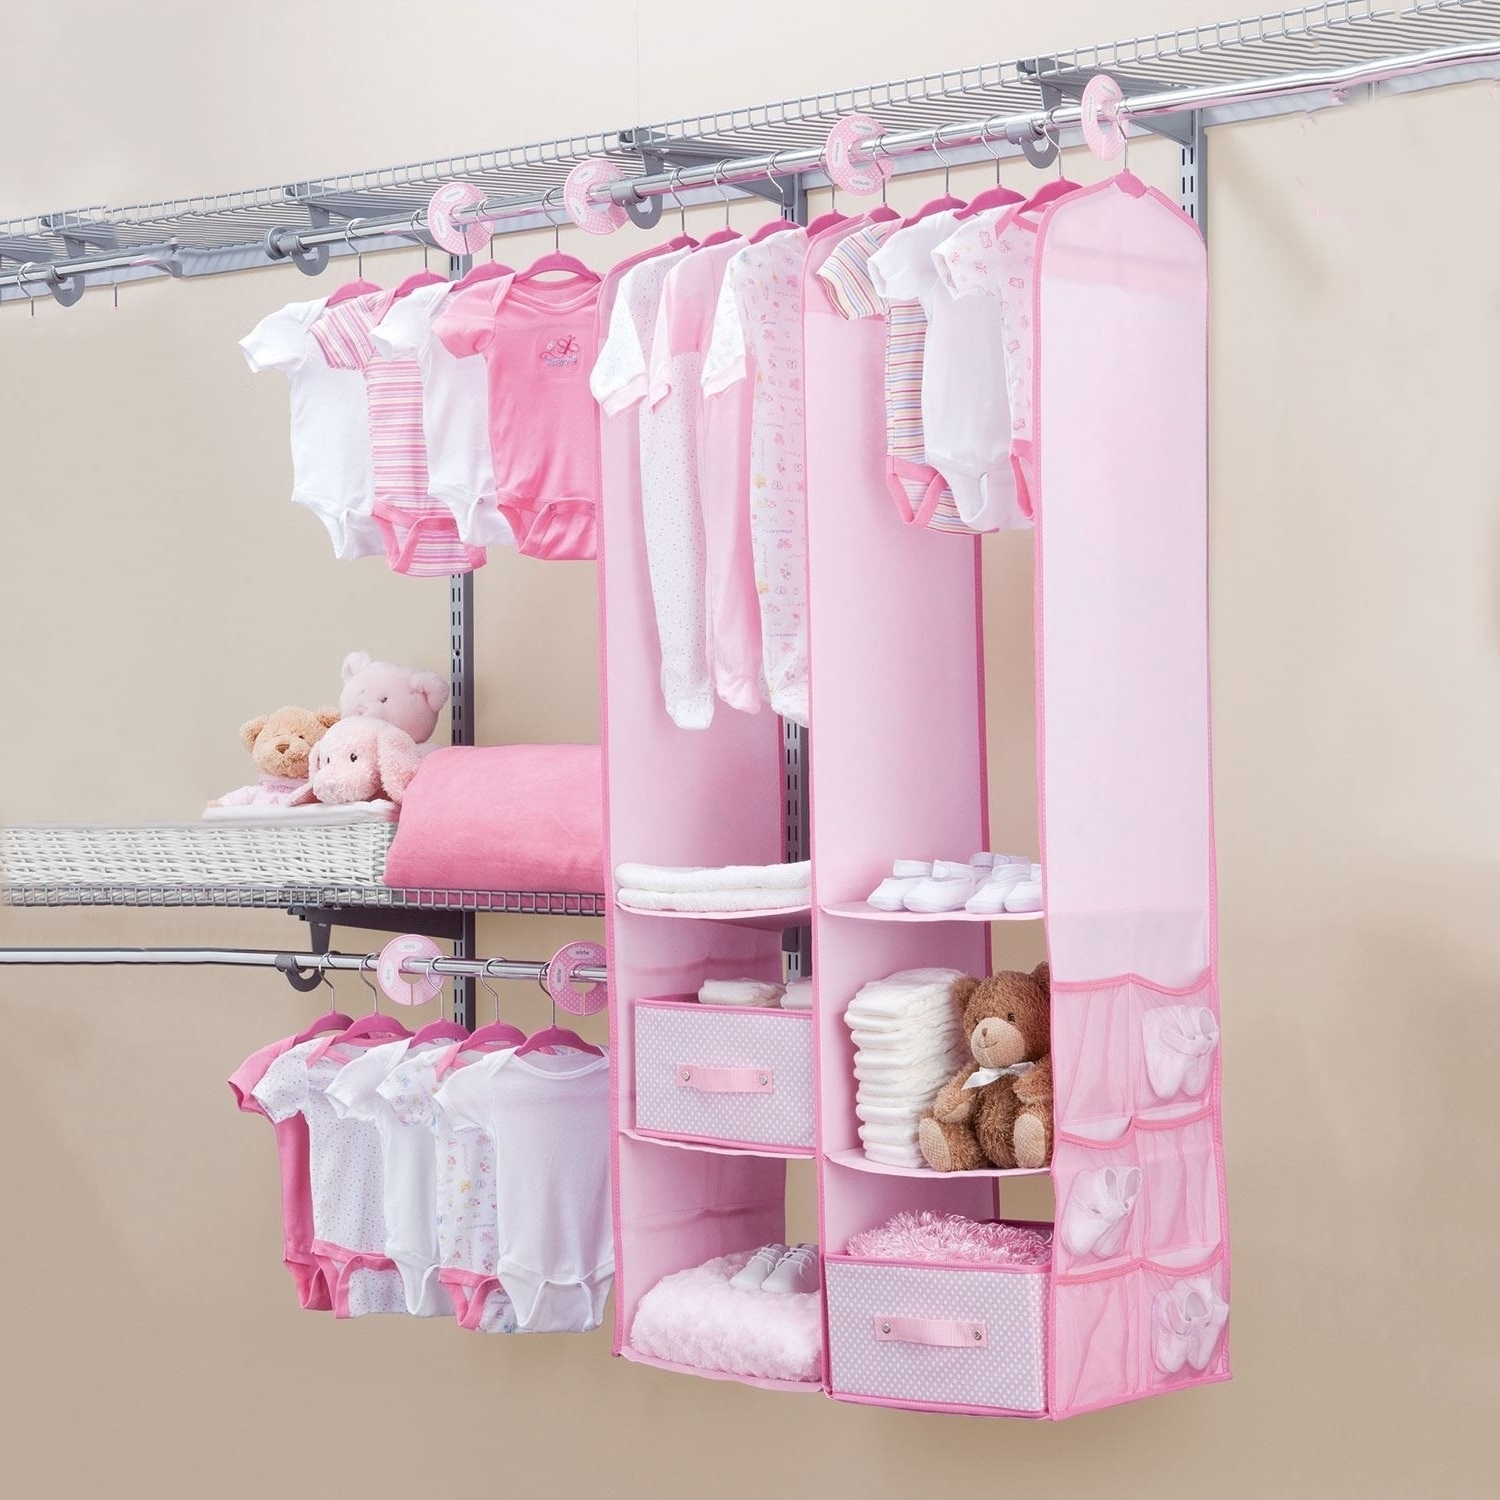 Incredible Awesome Idea Baby Wardrobe – Closet & Wadrobe Ideas Pertaining To Most Current Cheap Baby Wardrobes (Gallery 10 of 15)